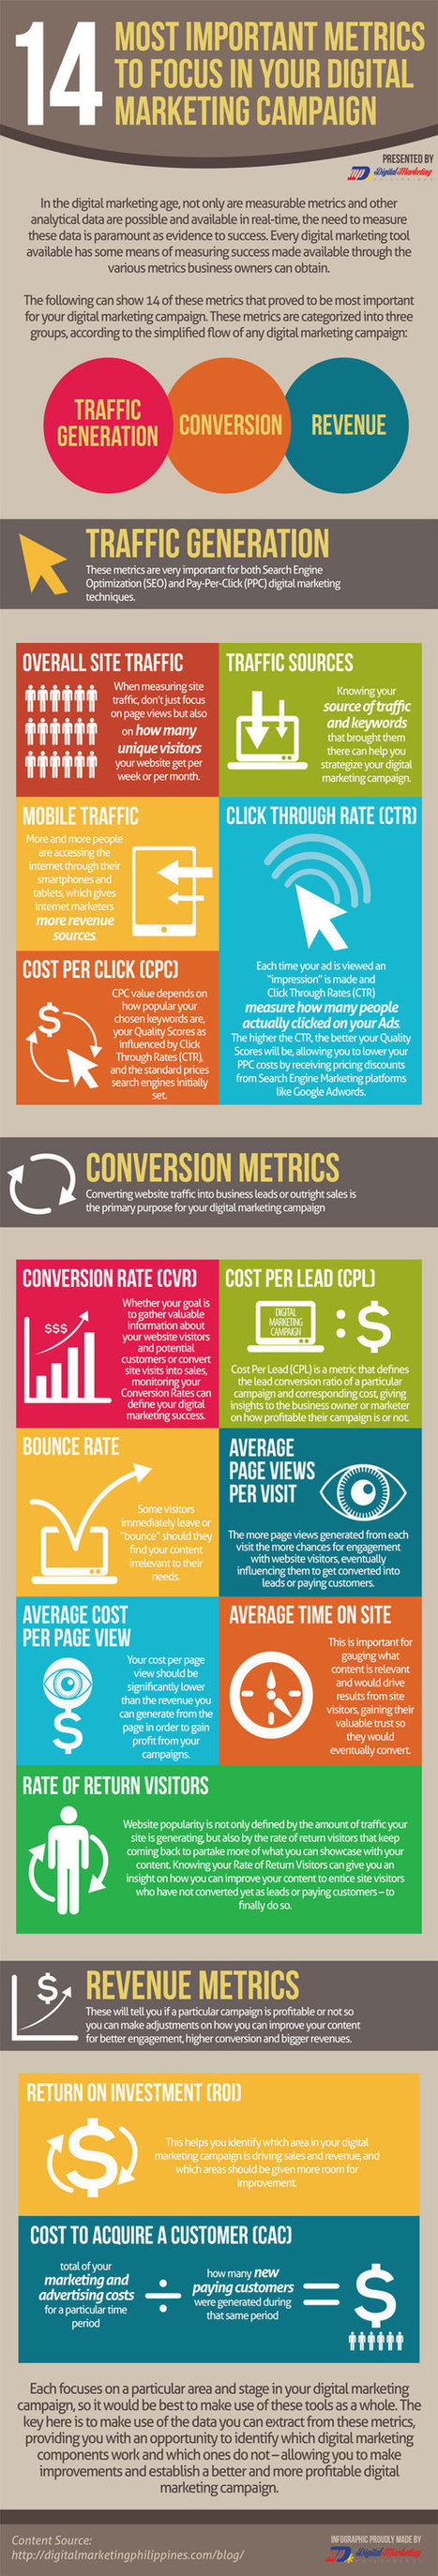 14 Most Important Metrics To Focus In Your Digital Marketing Campaign (Infographic)   The digital hodgepodge   Scoop.it